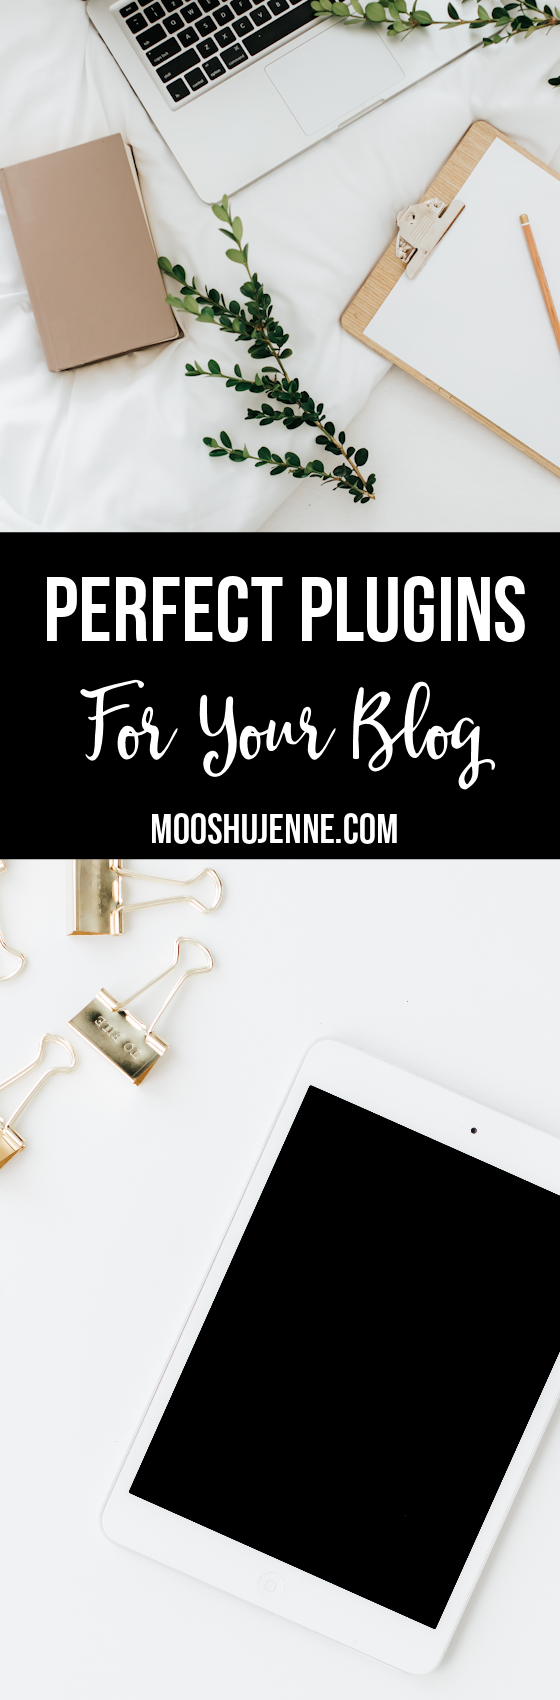 Today, I thought I could bring a little information to the table for my blog writing friends. These are the perfect plugins for your blog that you should be using. via @mooshujenne